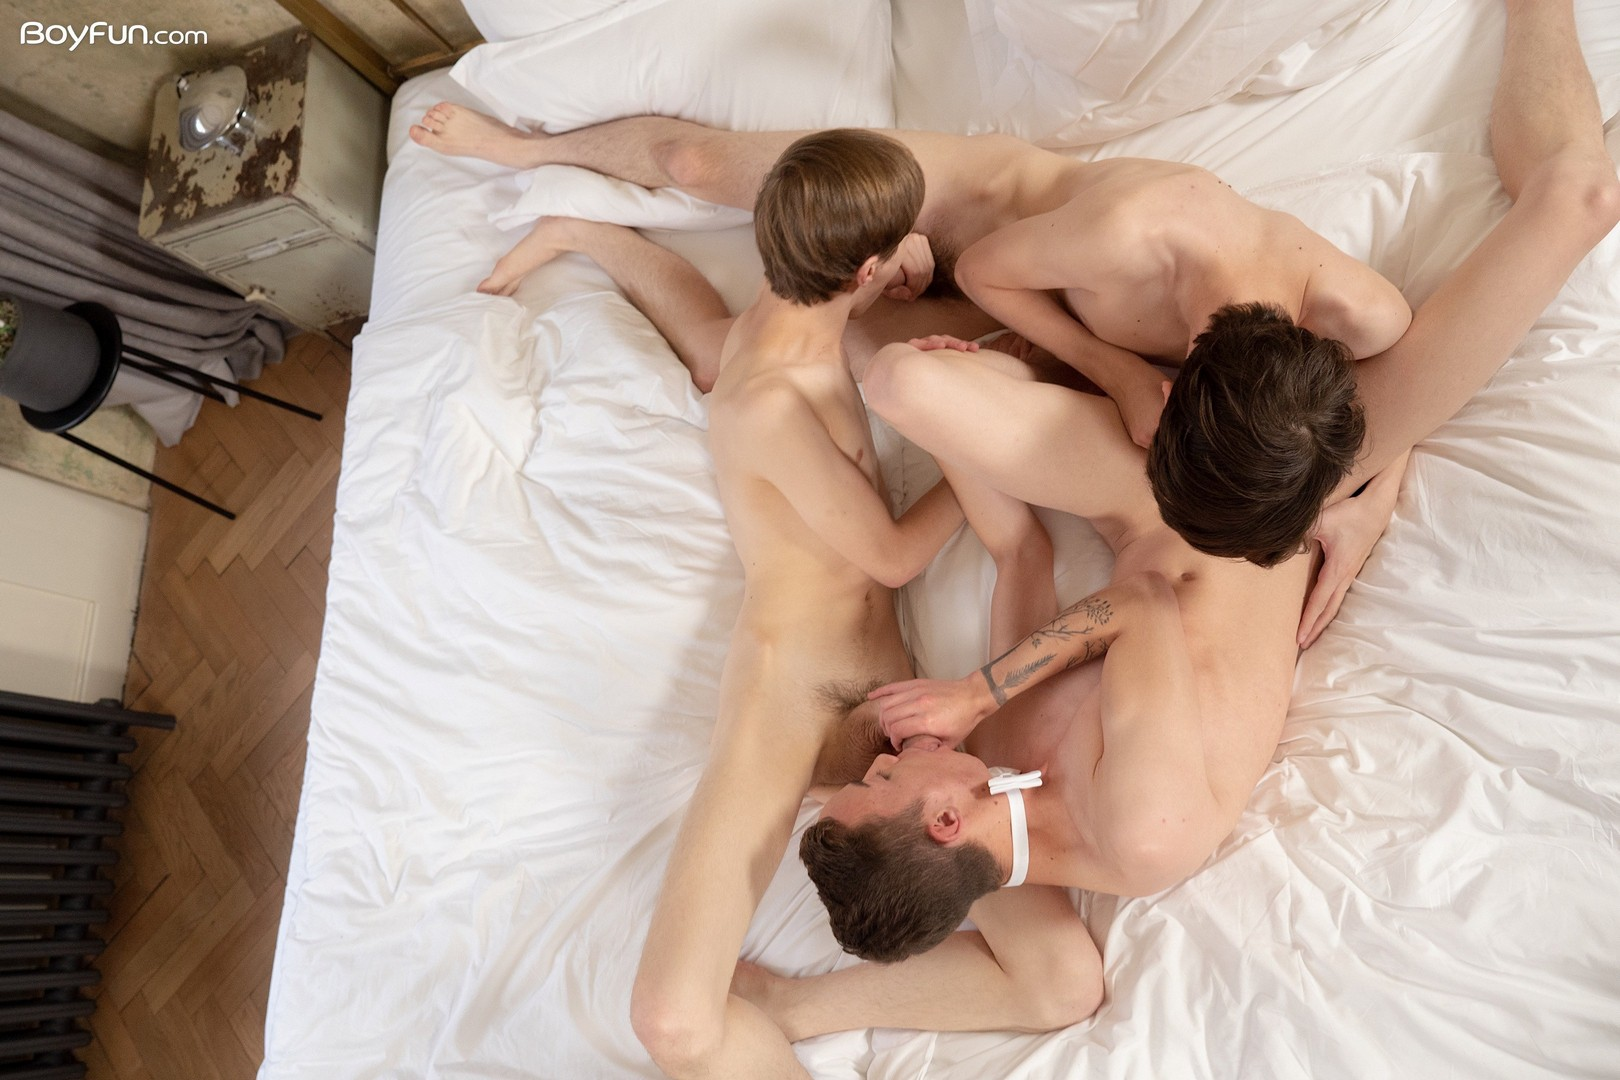 European gay boys having a threesome